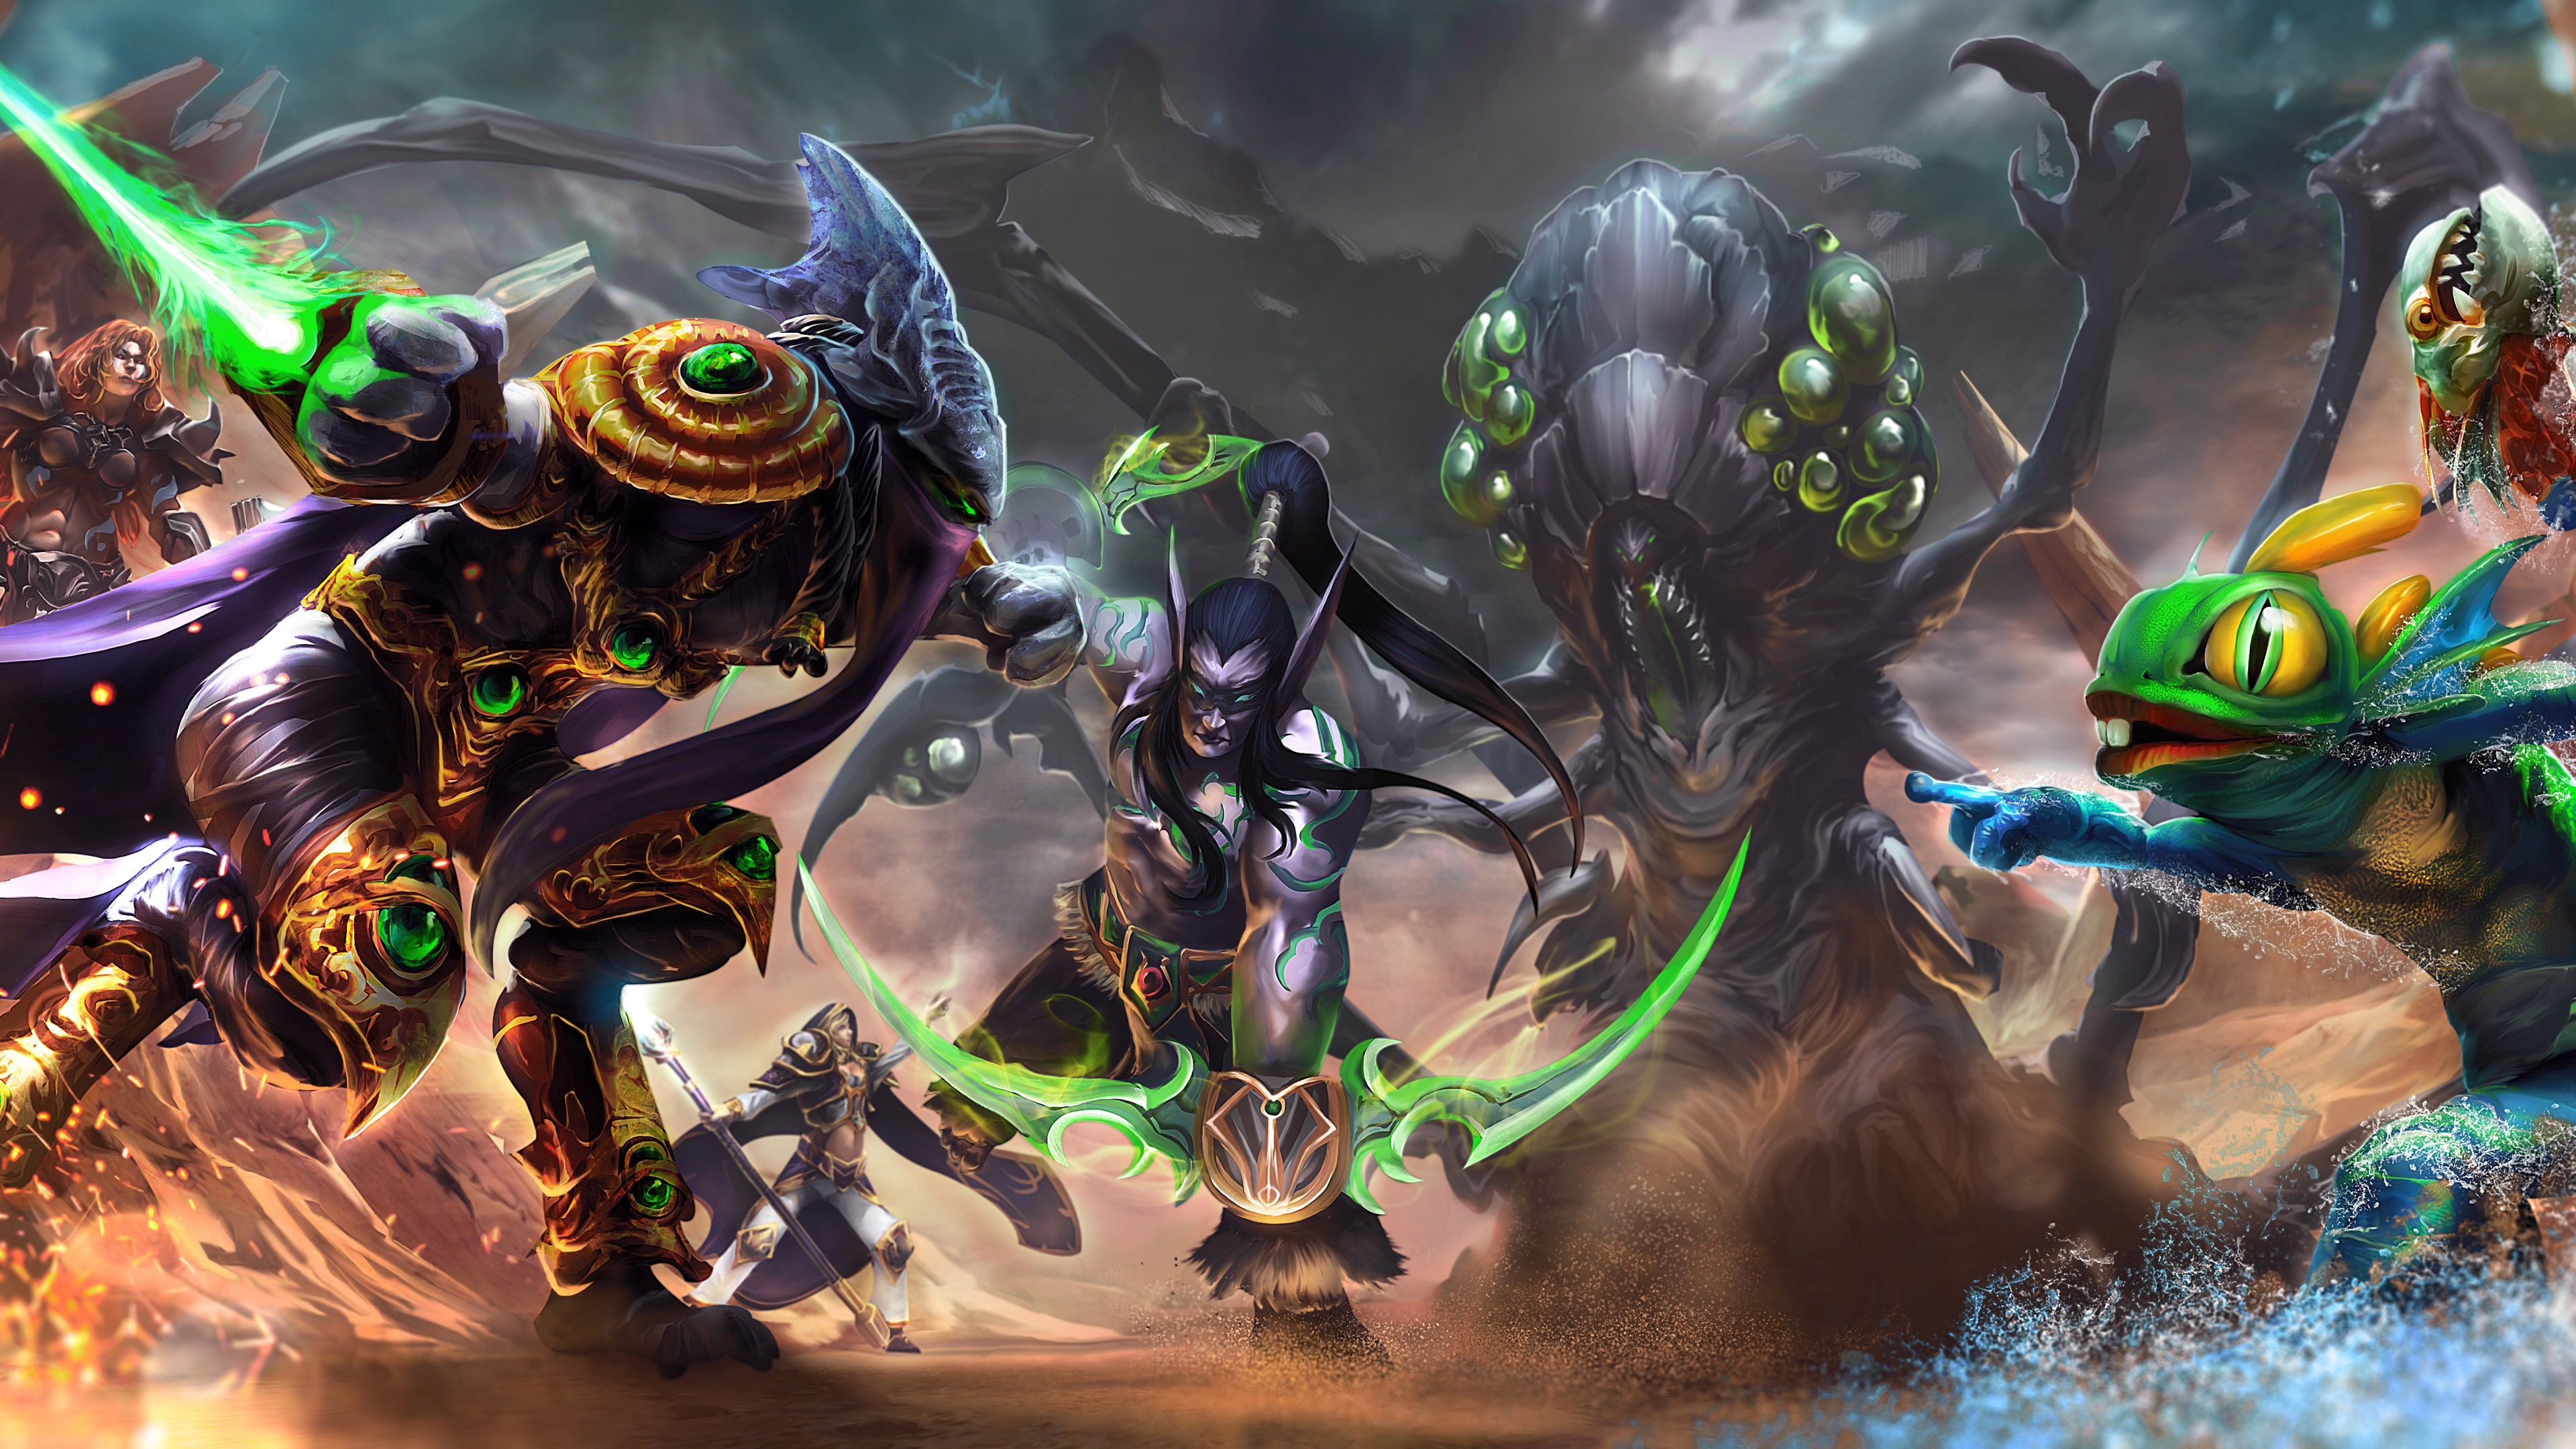 Wallpaper Heroes Of The Storm Art Picture 3840x2160 Uhd 4k